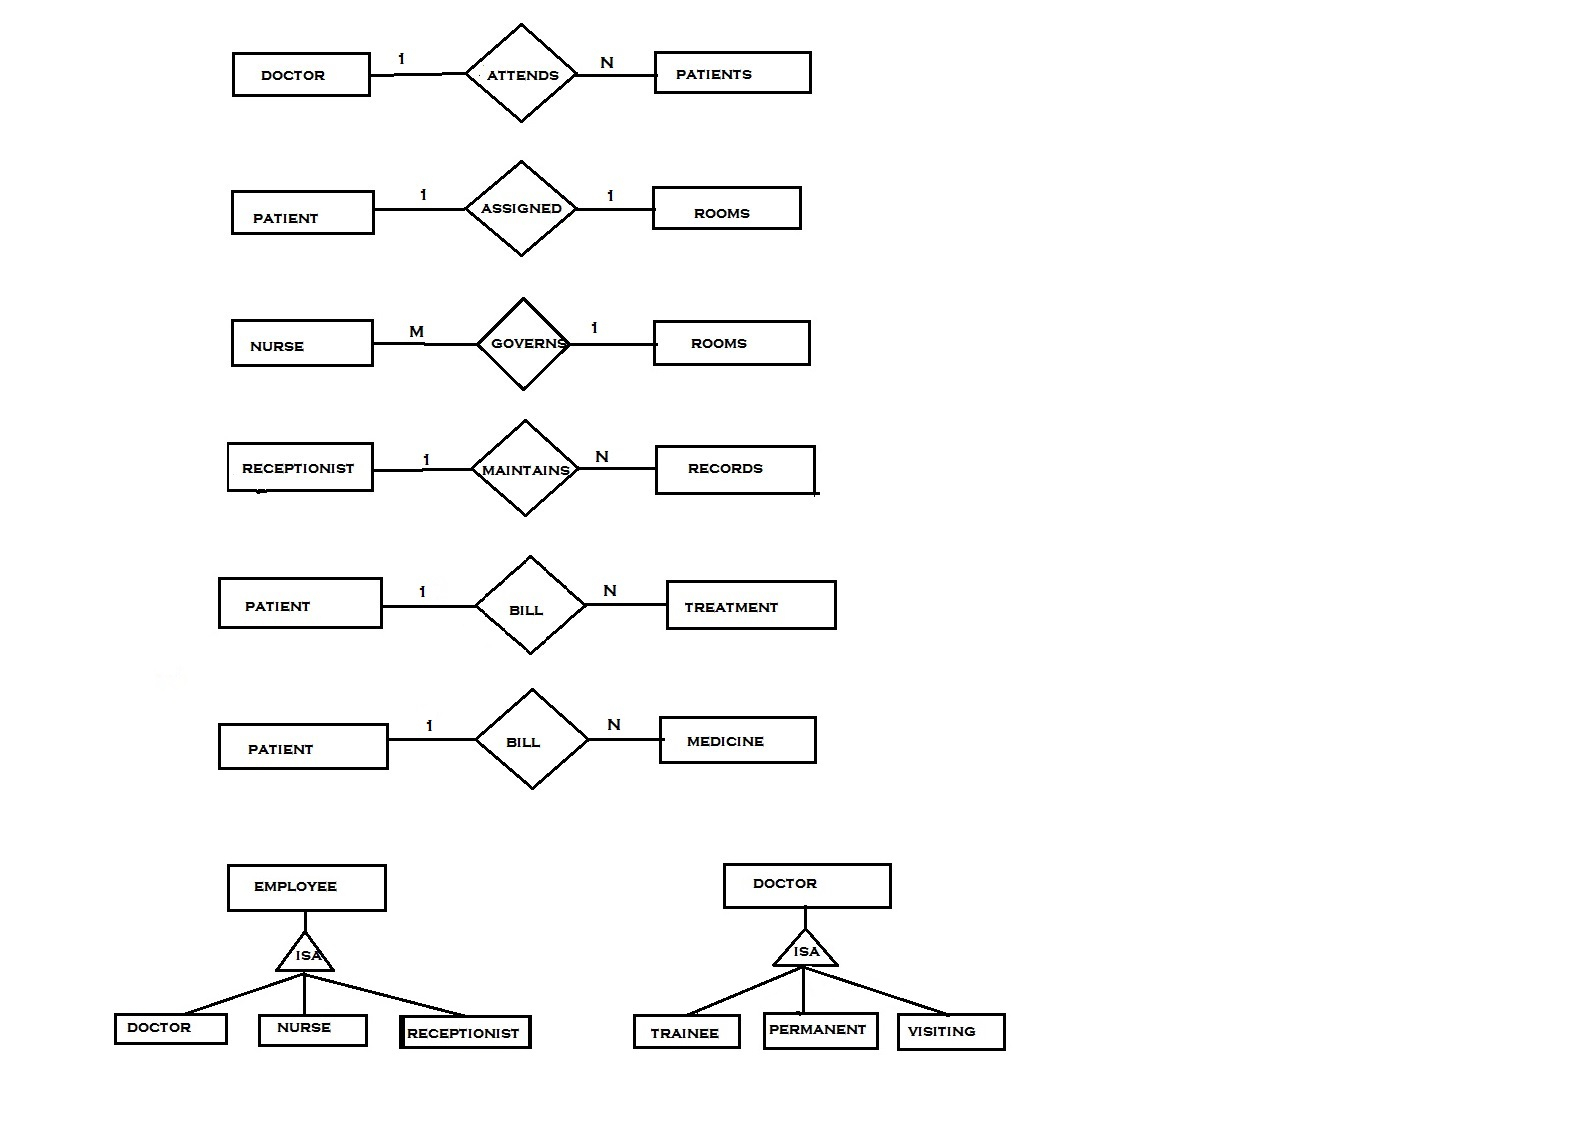 Er Diagram With Extended Feature, Roll No 33 | Lbs Kuttipedia with regard to Entity Relationship Diagram Cardinality Examples